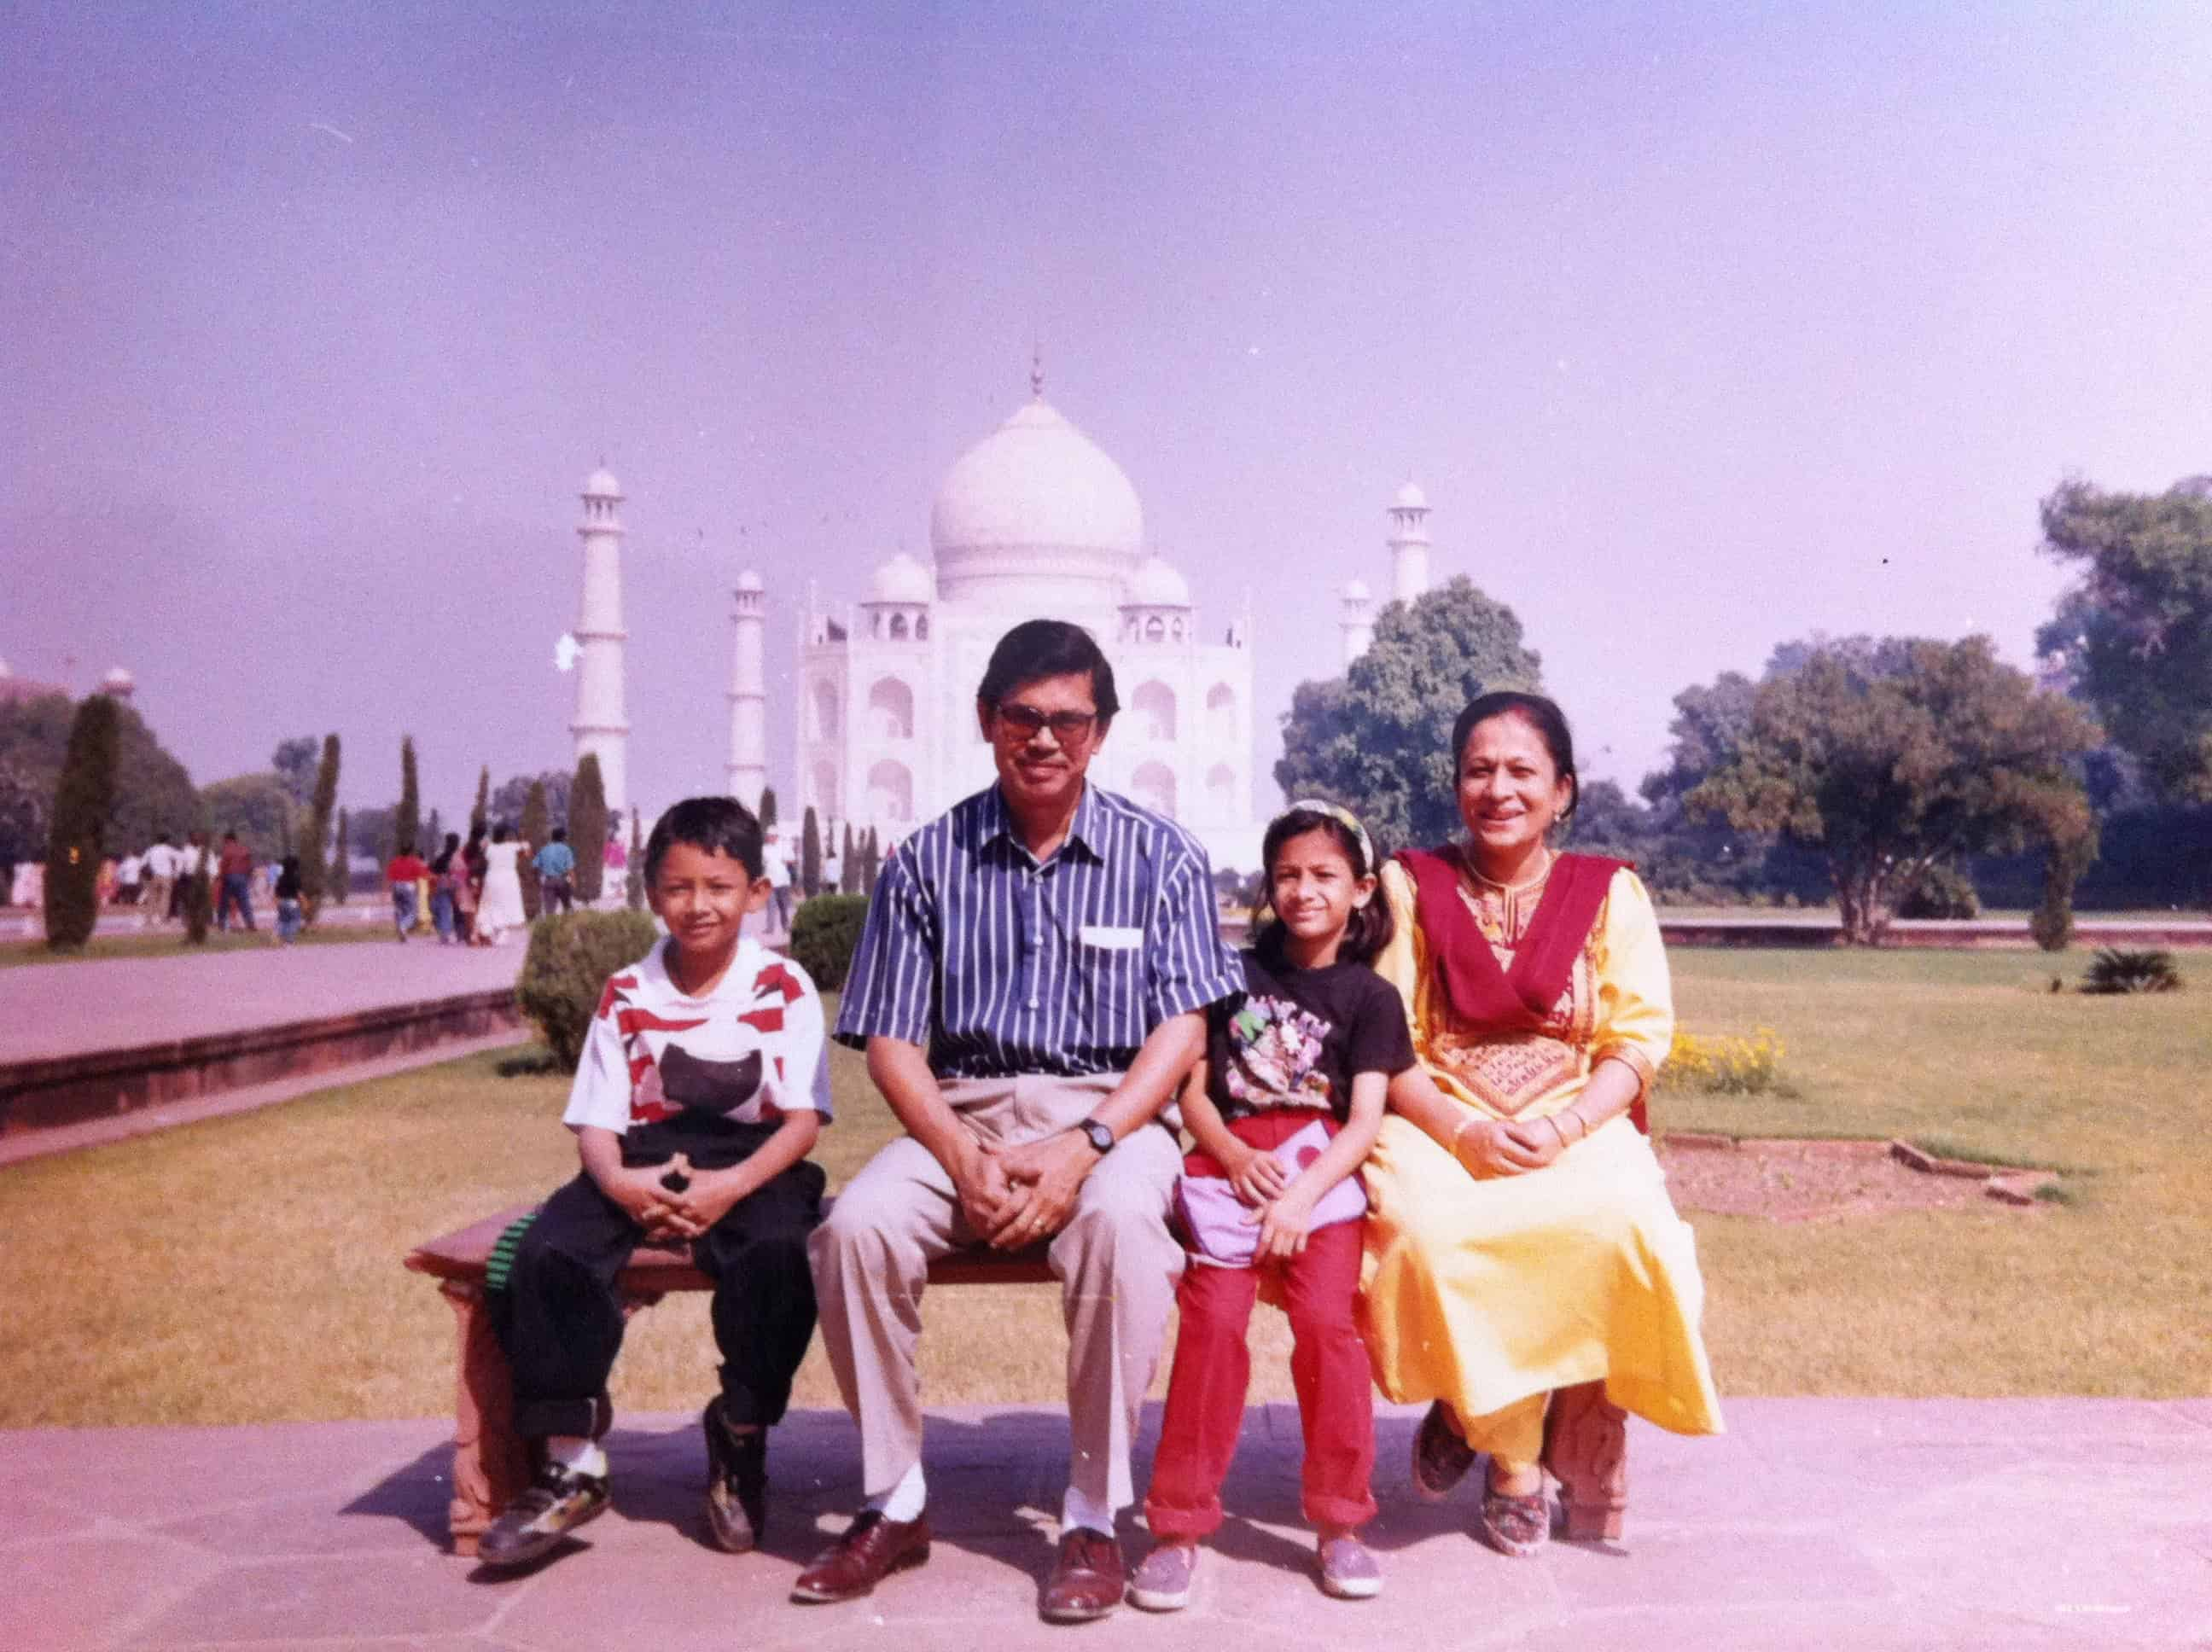 Young Ranajay traveling to Taj mahal with his family